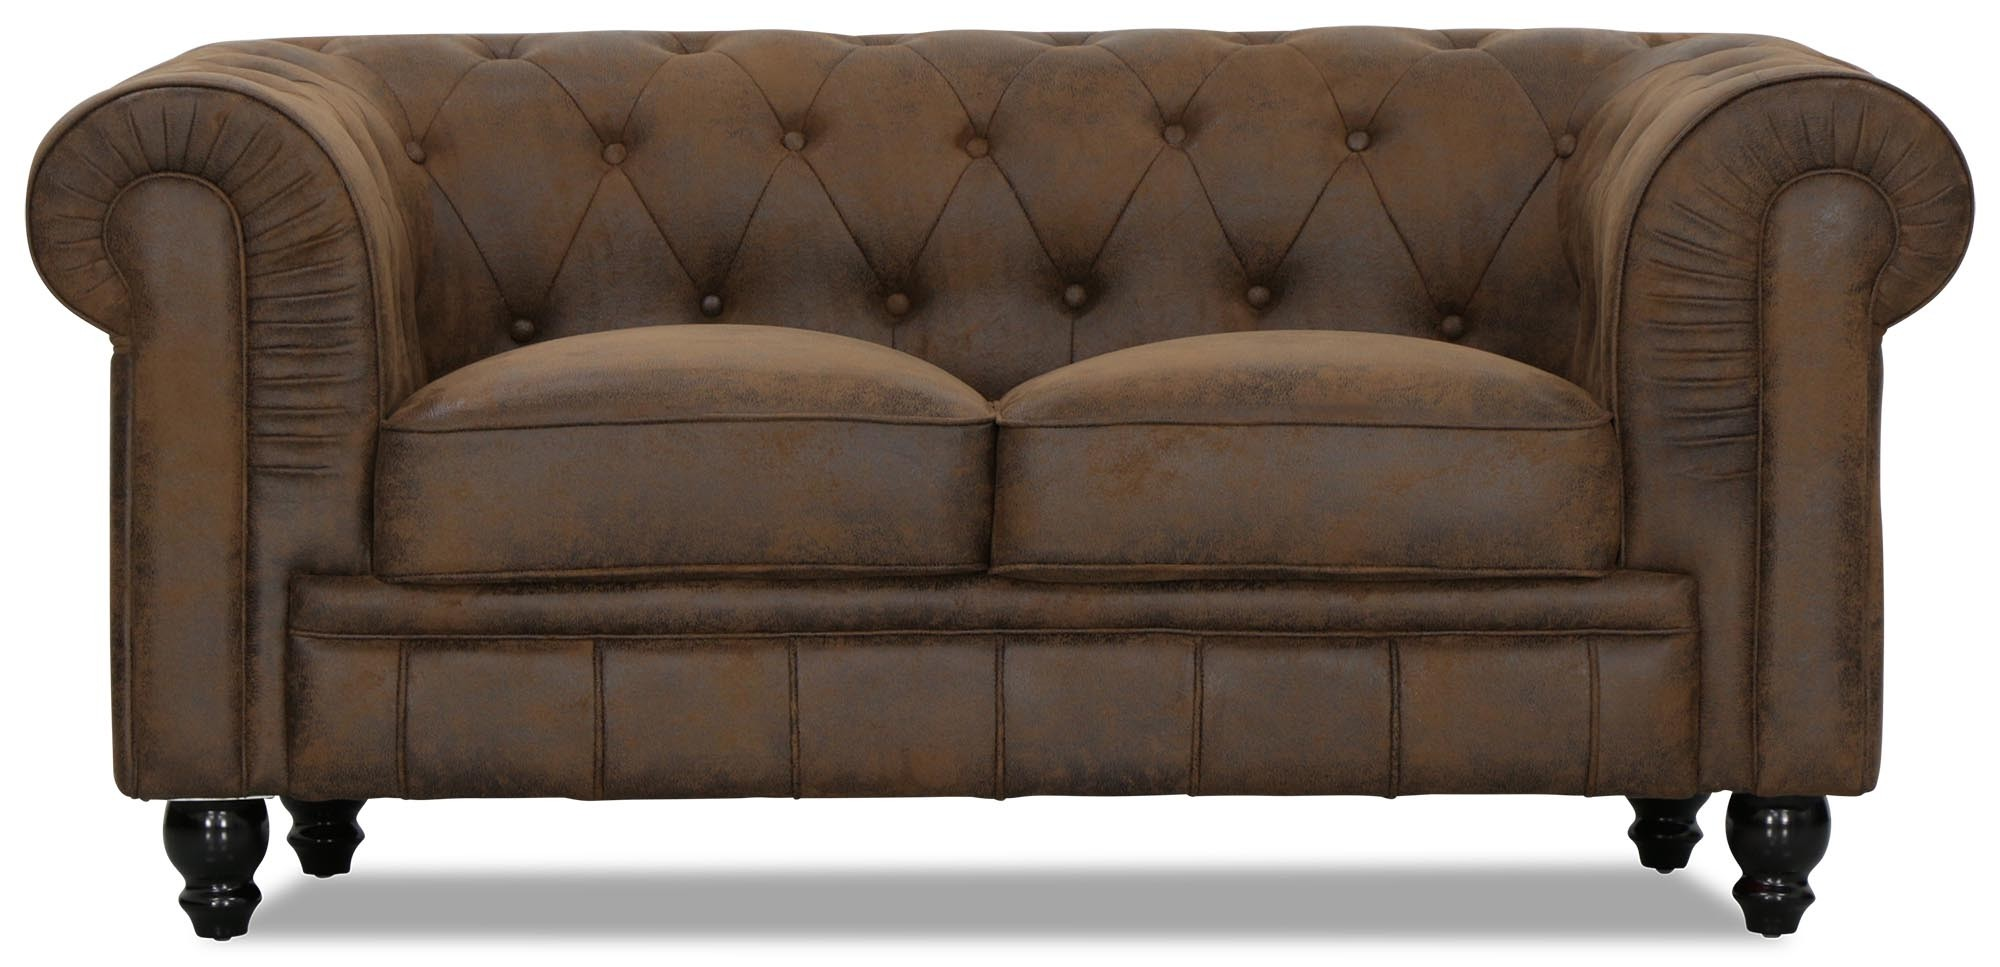 Benjamin Clical 2 Seater Vintage Pu Leather Sofa